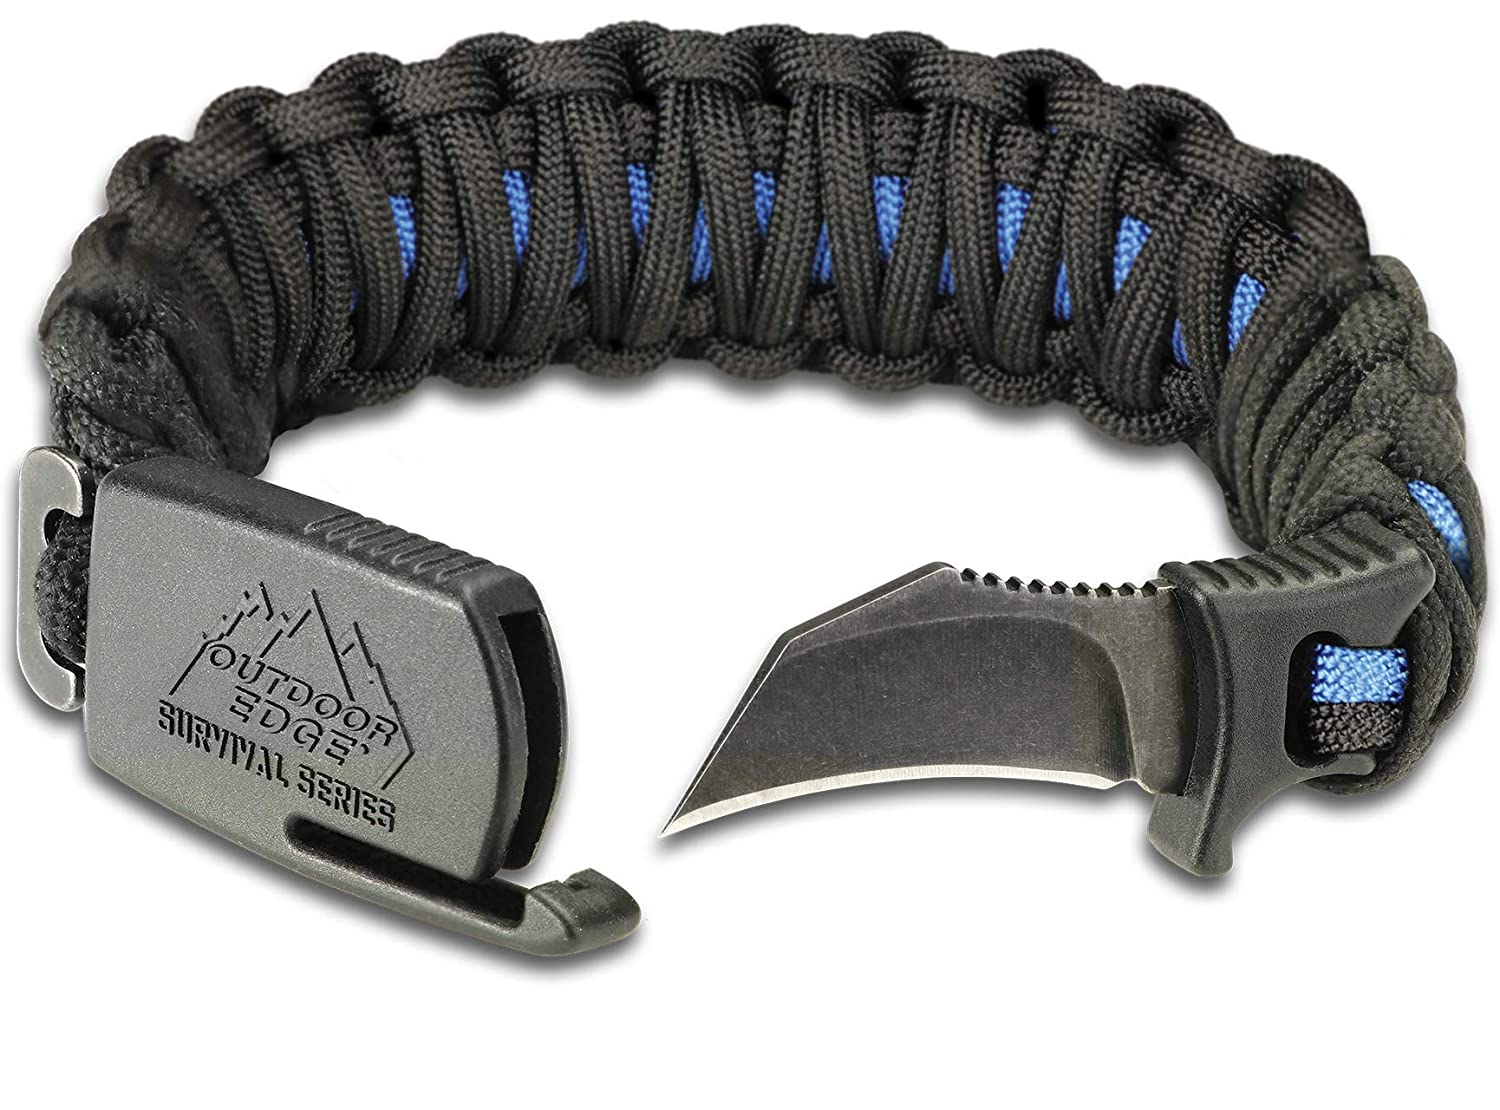 Outdoor Edge ParaClaw Paracord Survival Bracelet with 1 5 Inch Knife Blade